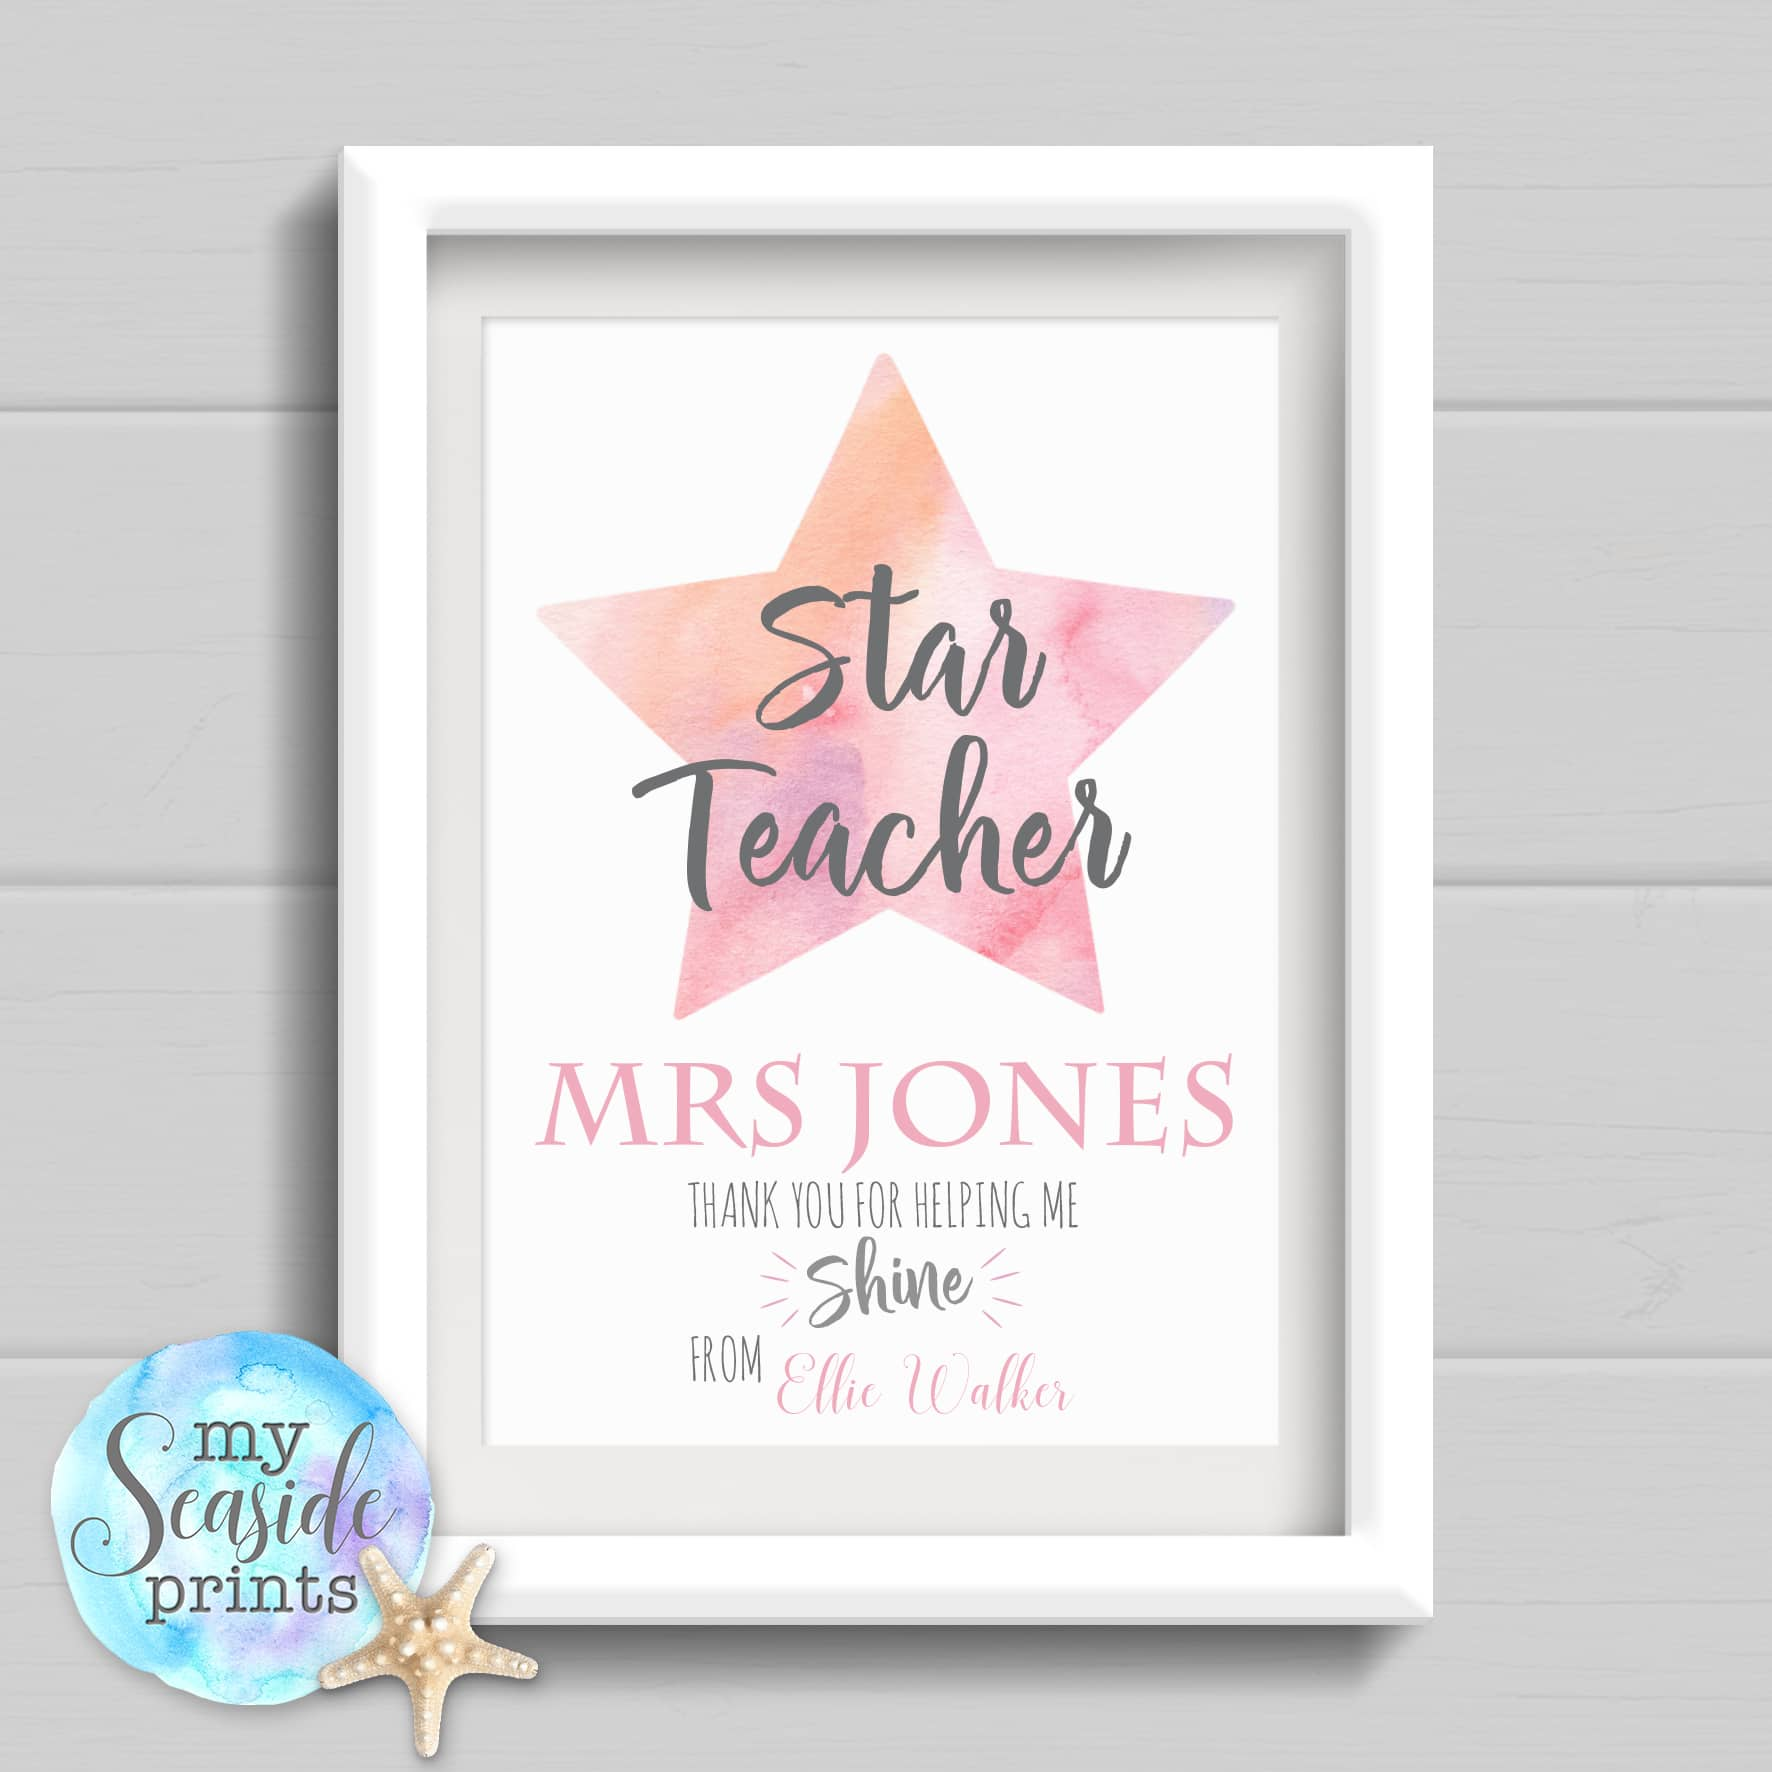 Personalised Teachers Thank You Print - Star teacher